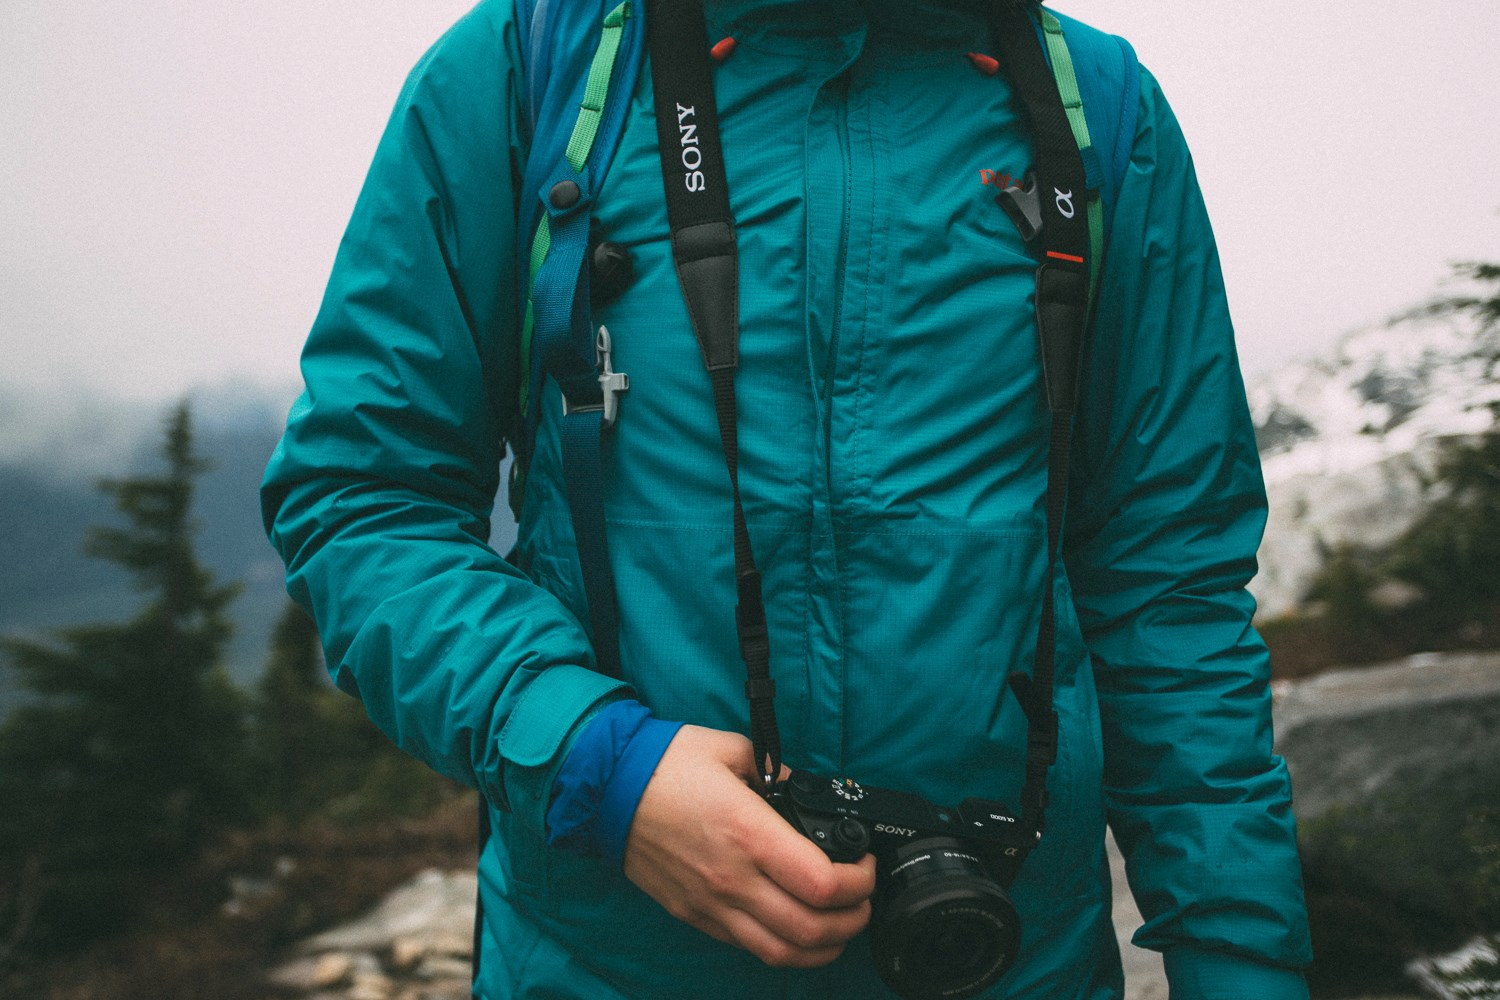 green Patagonia windbreaker jacket with Sony A6000 mirrorless camera south america gear list